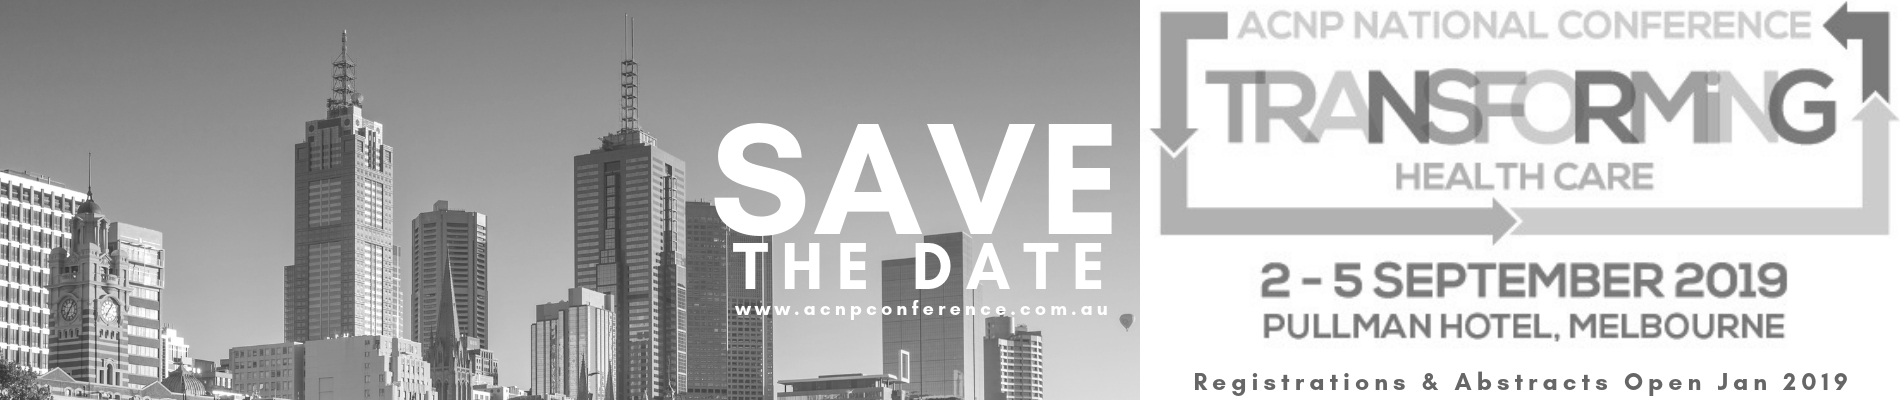 ACNP National Conference 2019